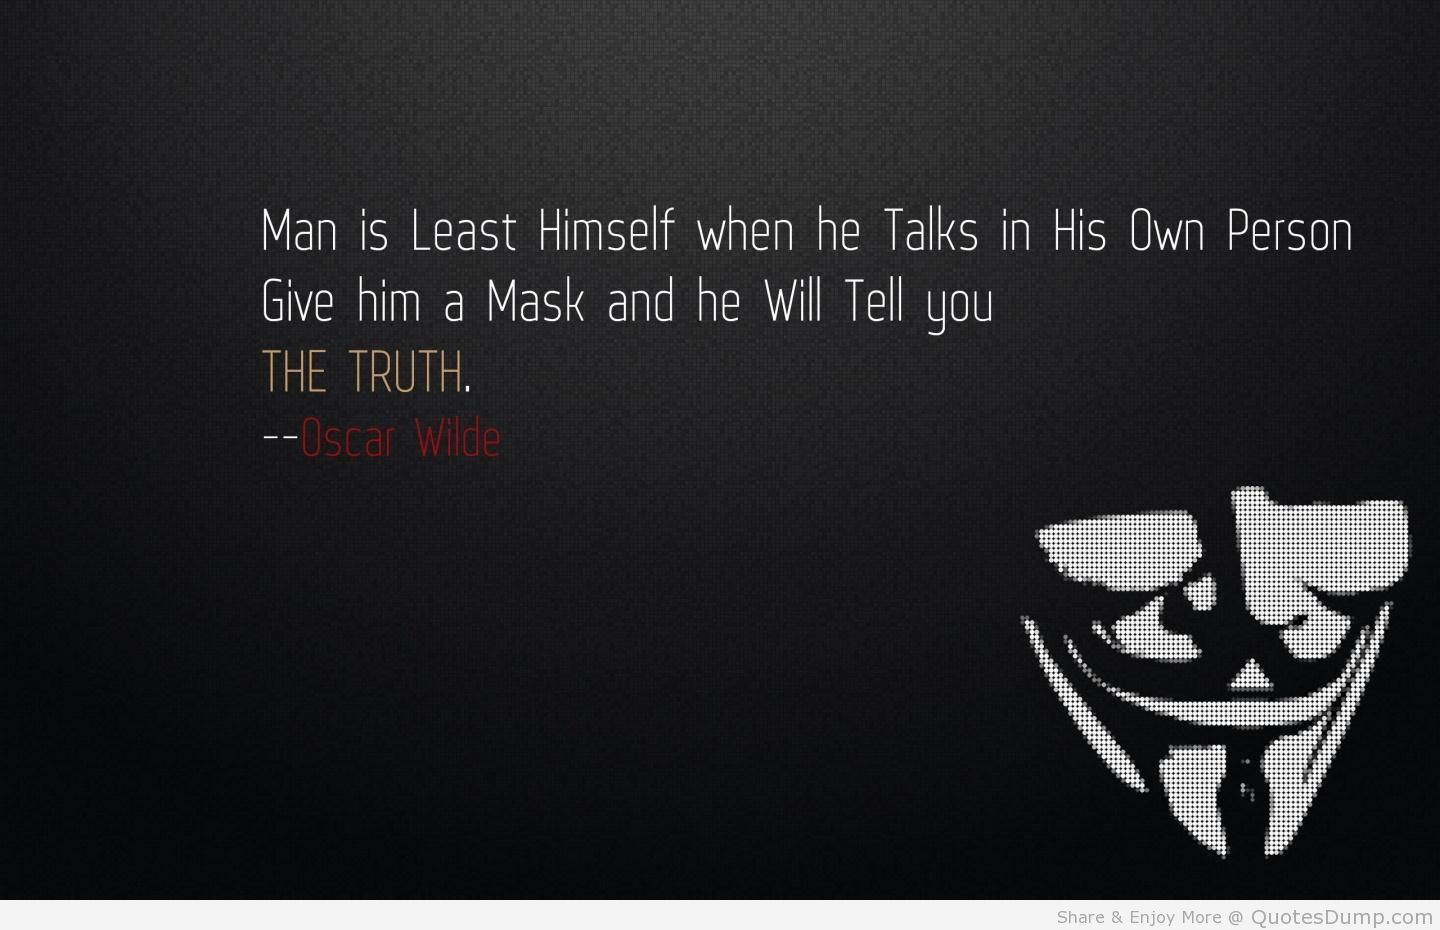 Quote Wallpapers For Desktop Inspirational Quotes Wallpapers Inspirational Quotes V For Vendetta Quotes